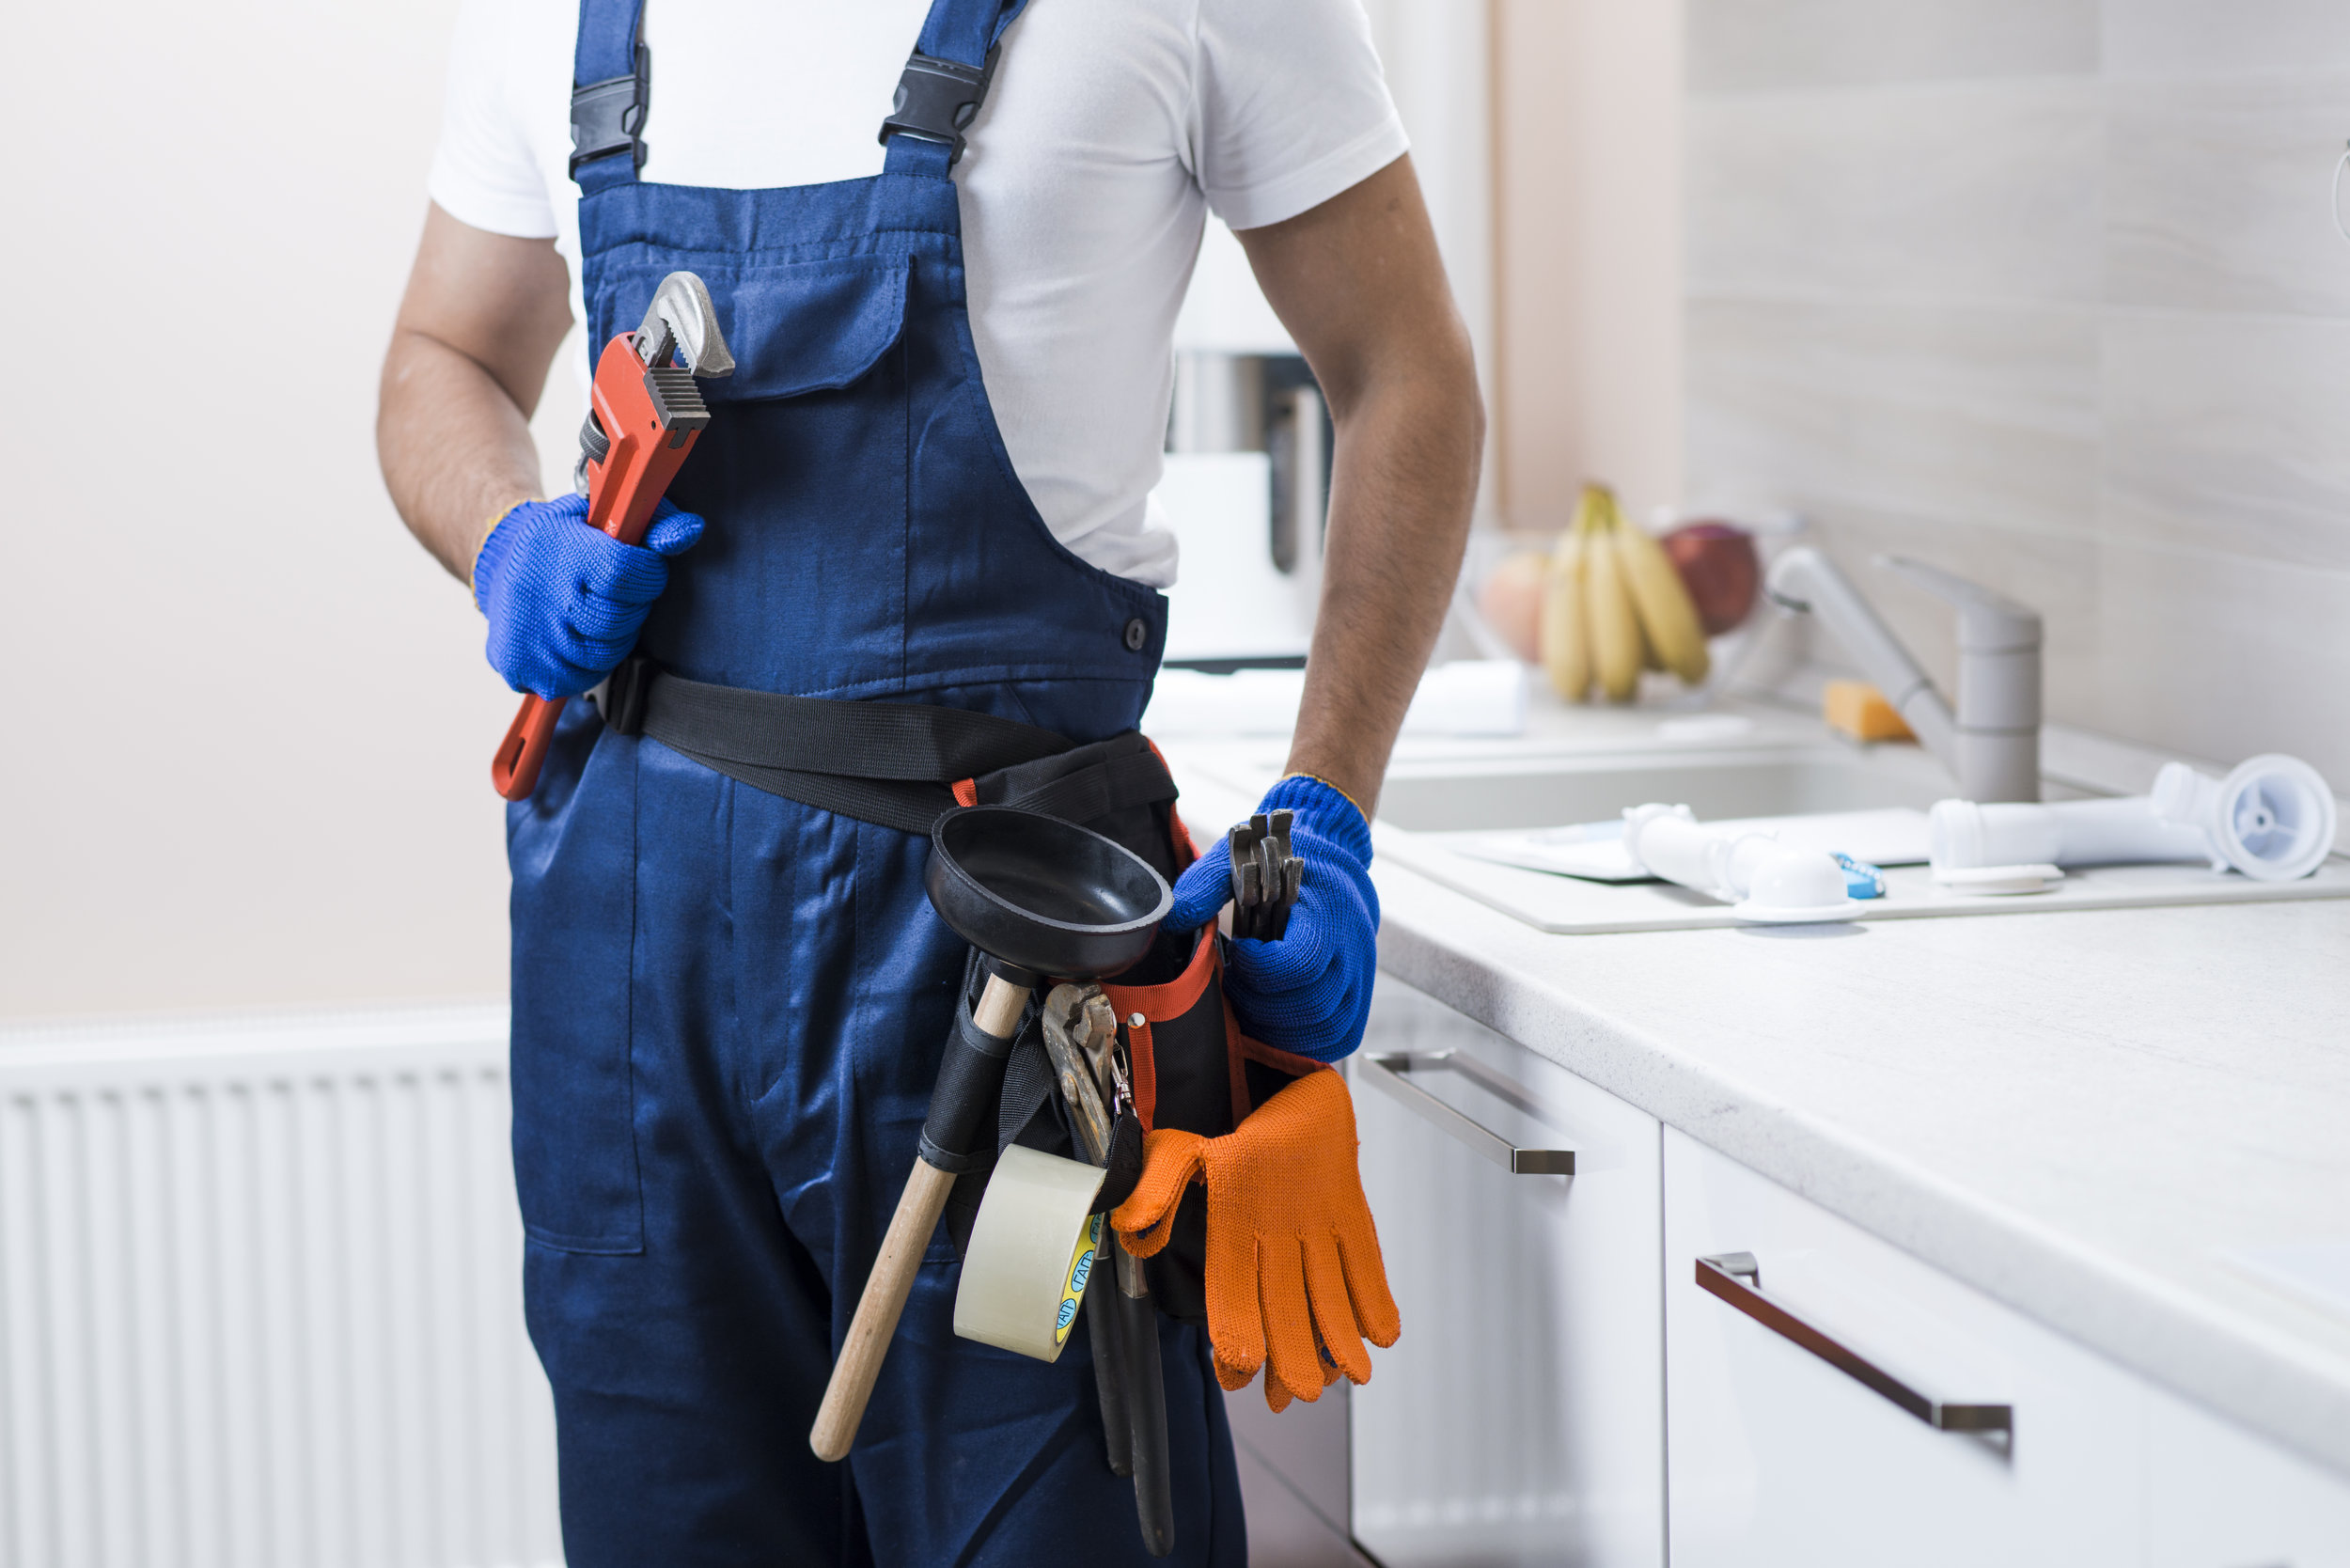 - Do you have renovation skills and experience?We are looking for Sub Contractors who are skilled in..- Demolitions- Framing- General Contracting- Waterproofing- Many other tradesMust have own transportation and tool